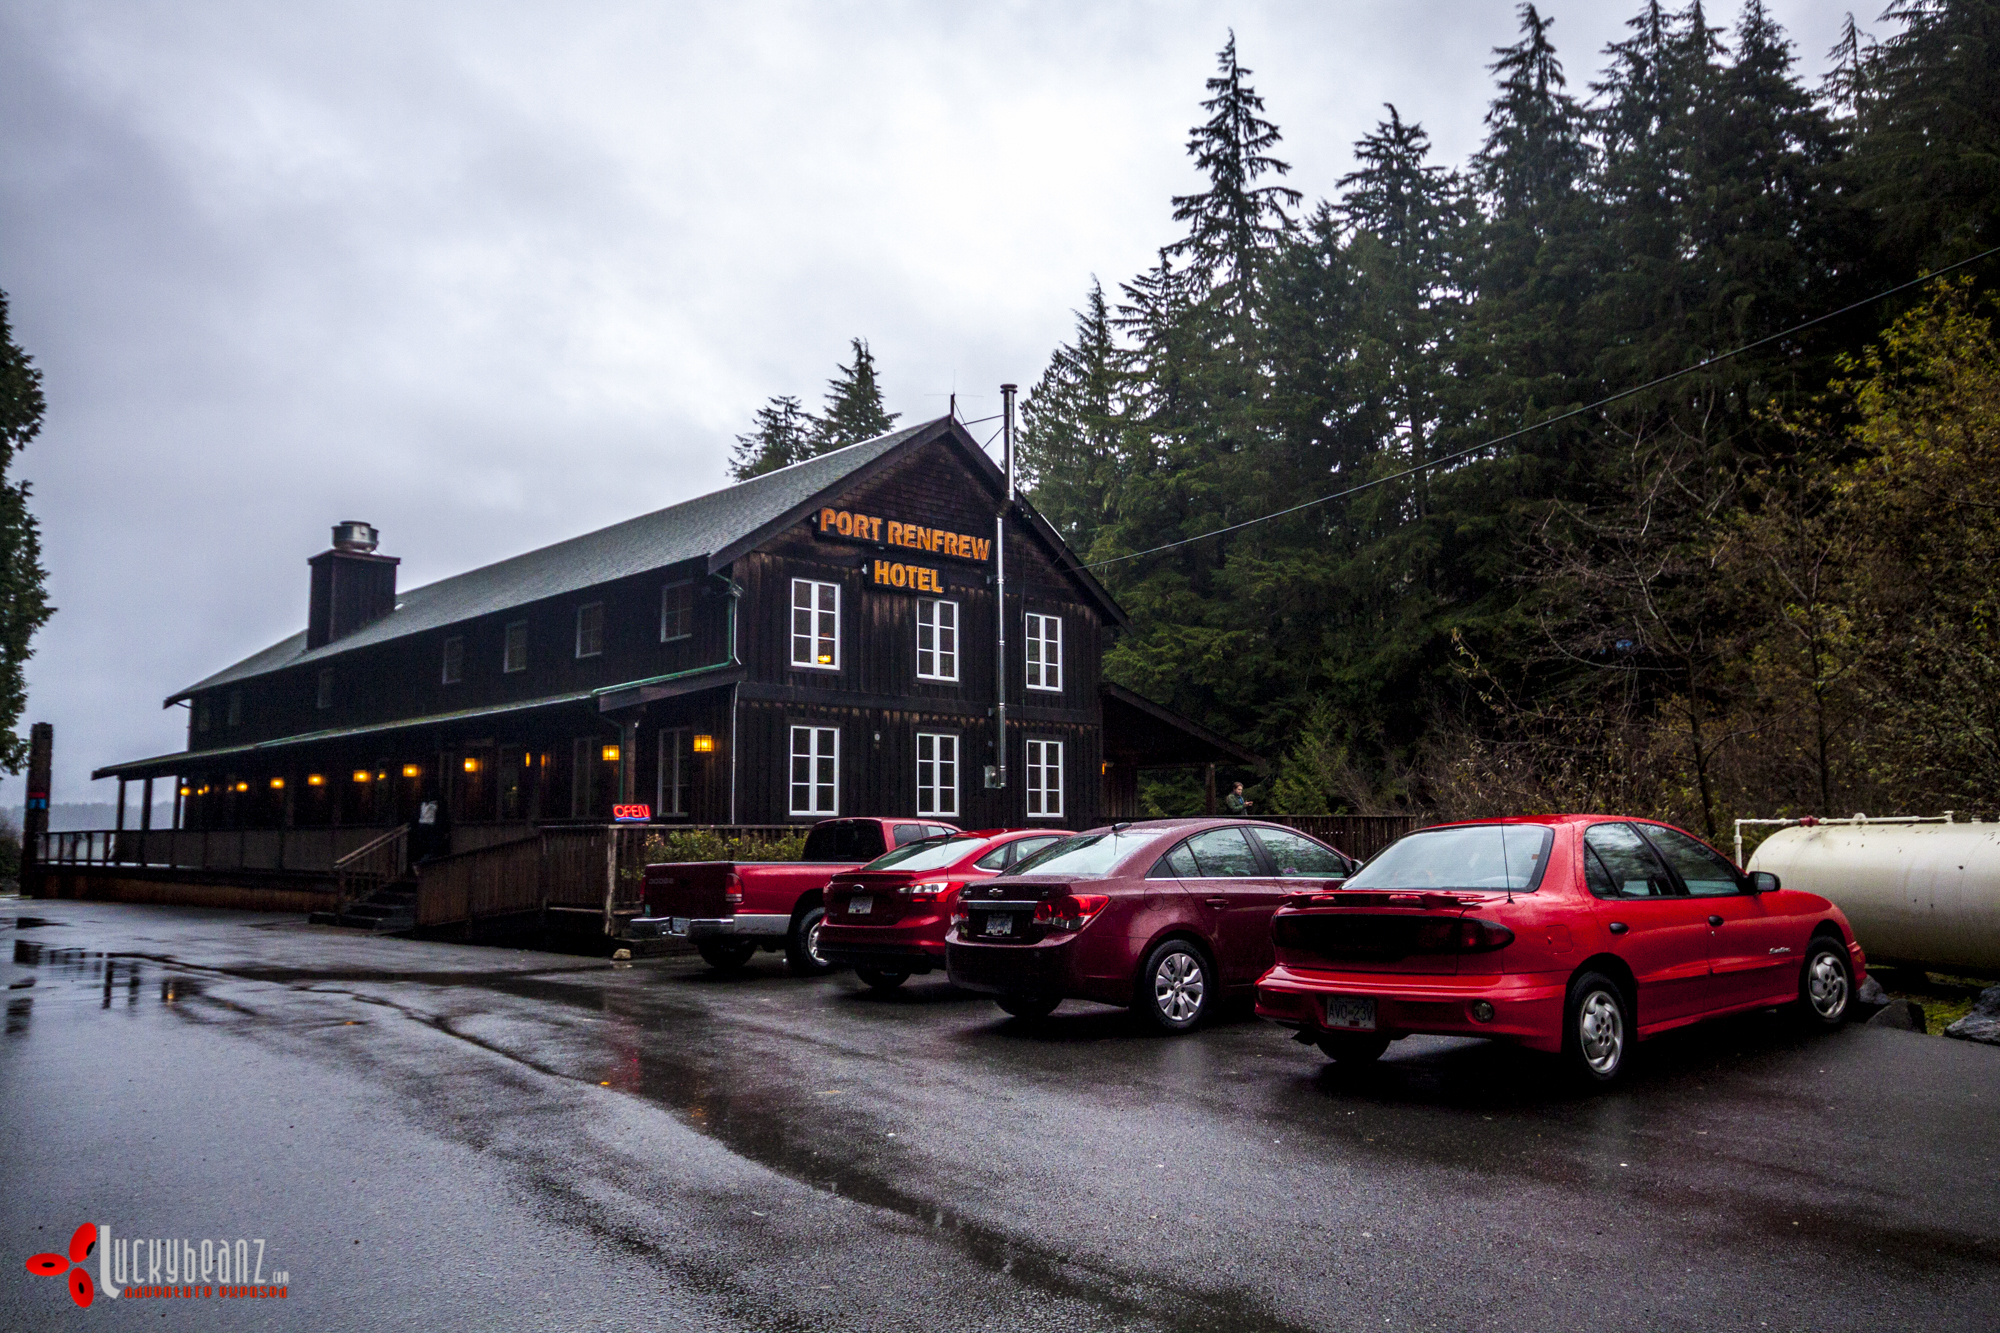 Port Renfrew Hotel red cars club.